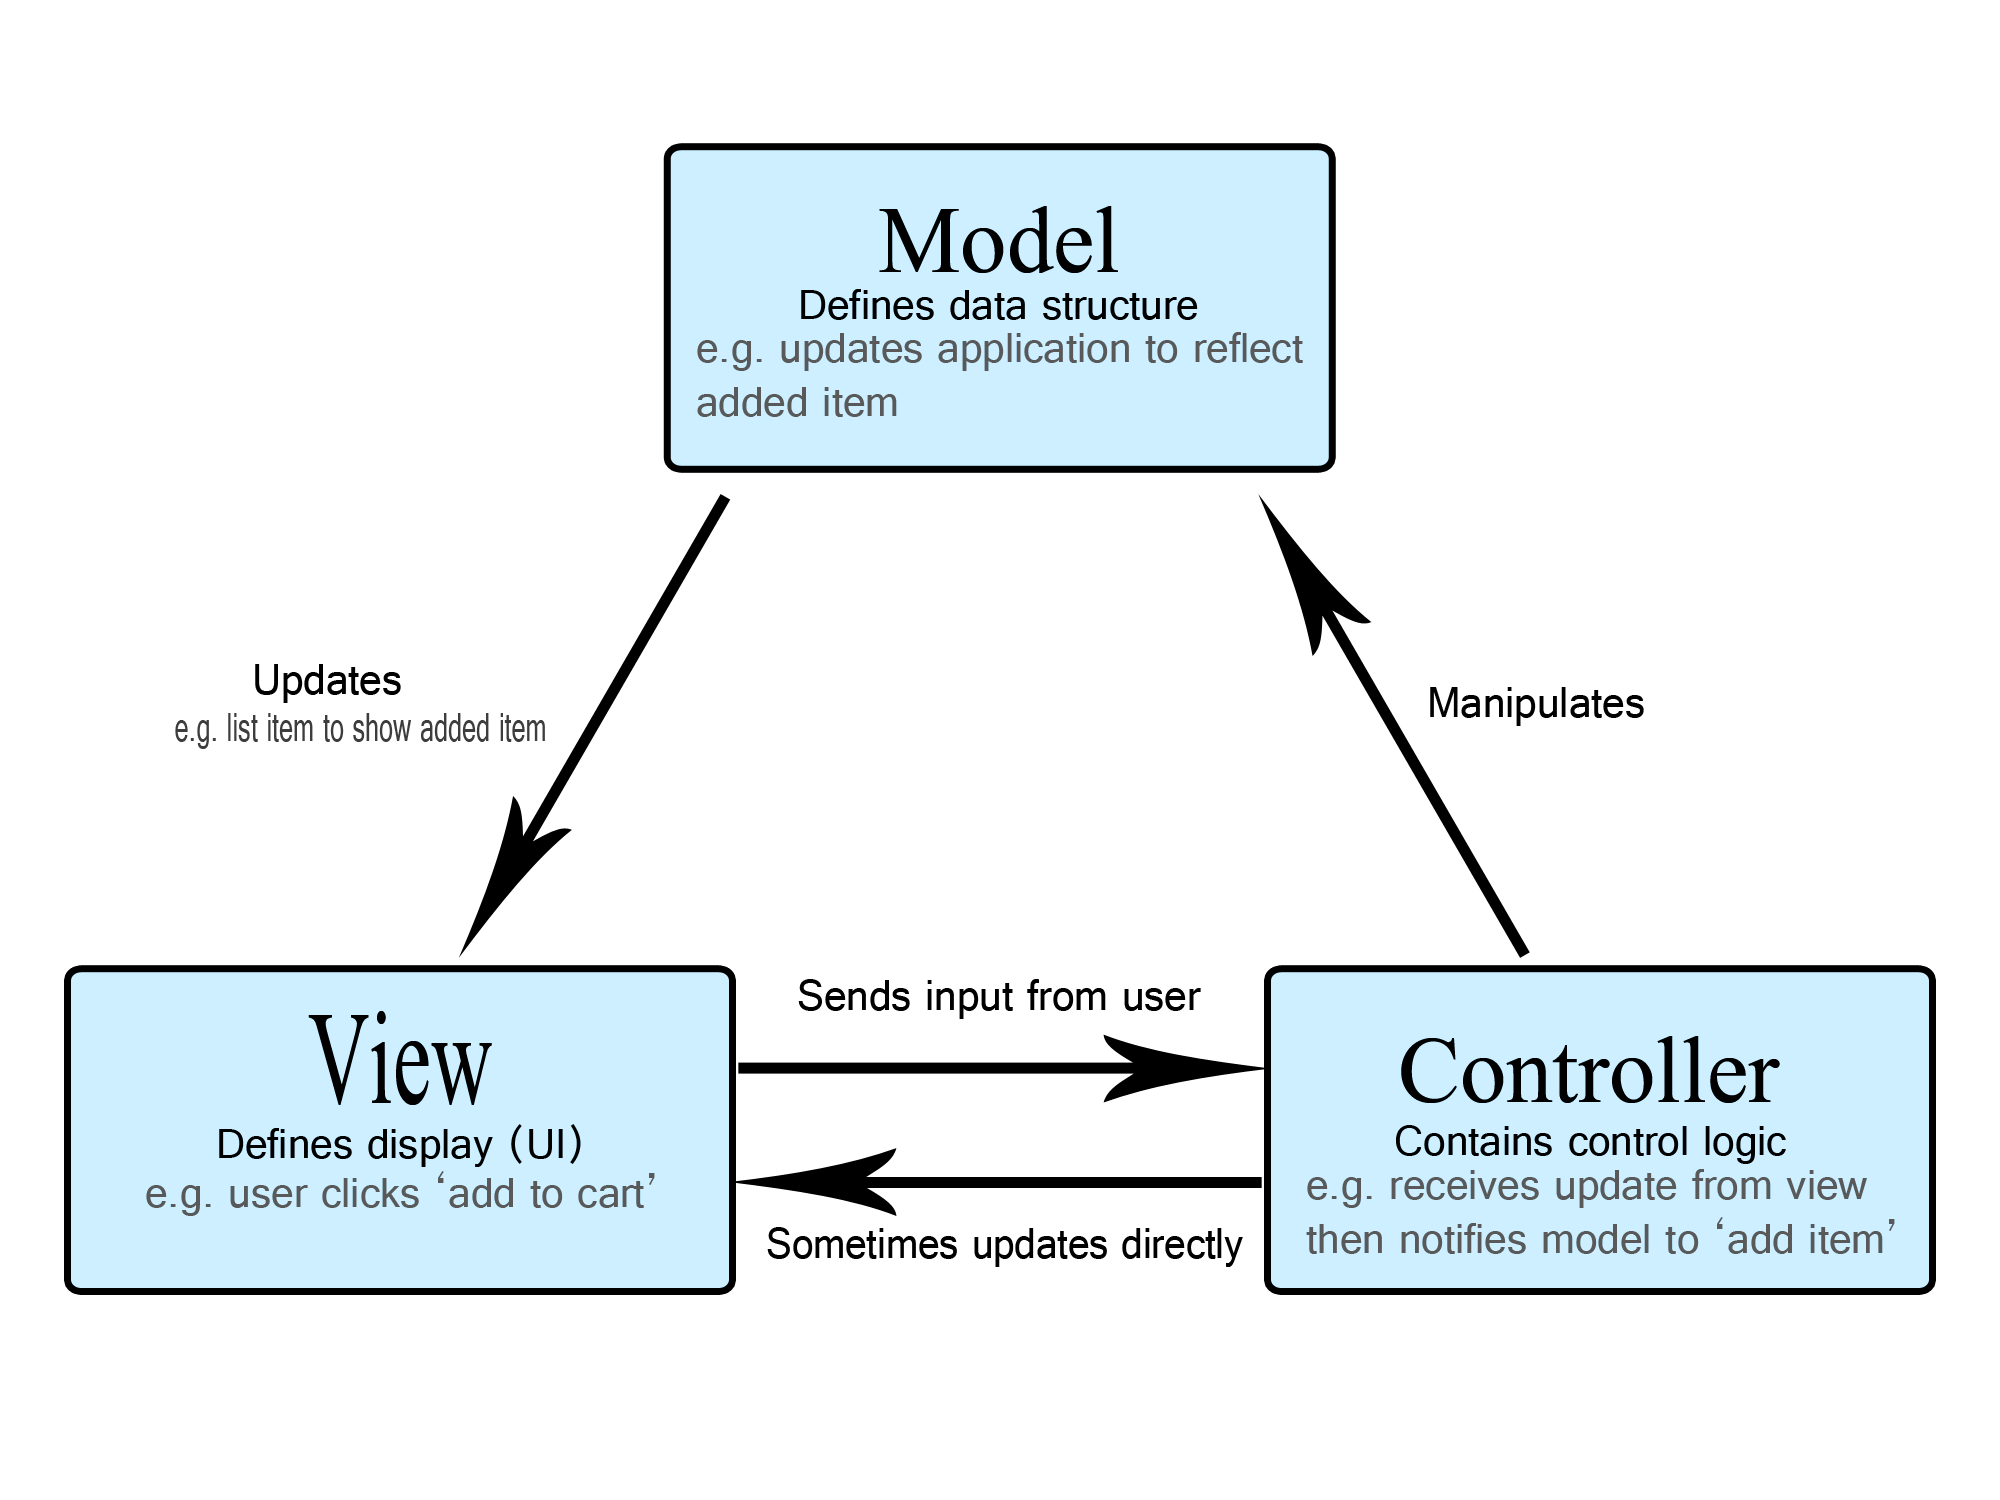 Diagram to show the different parts of the mvc architecture.